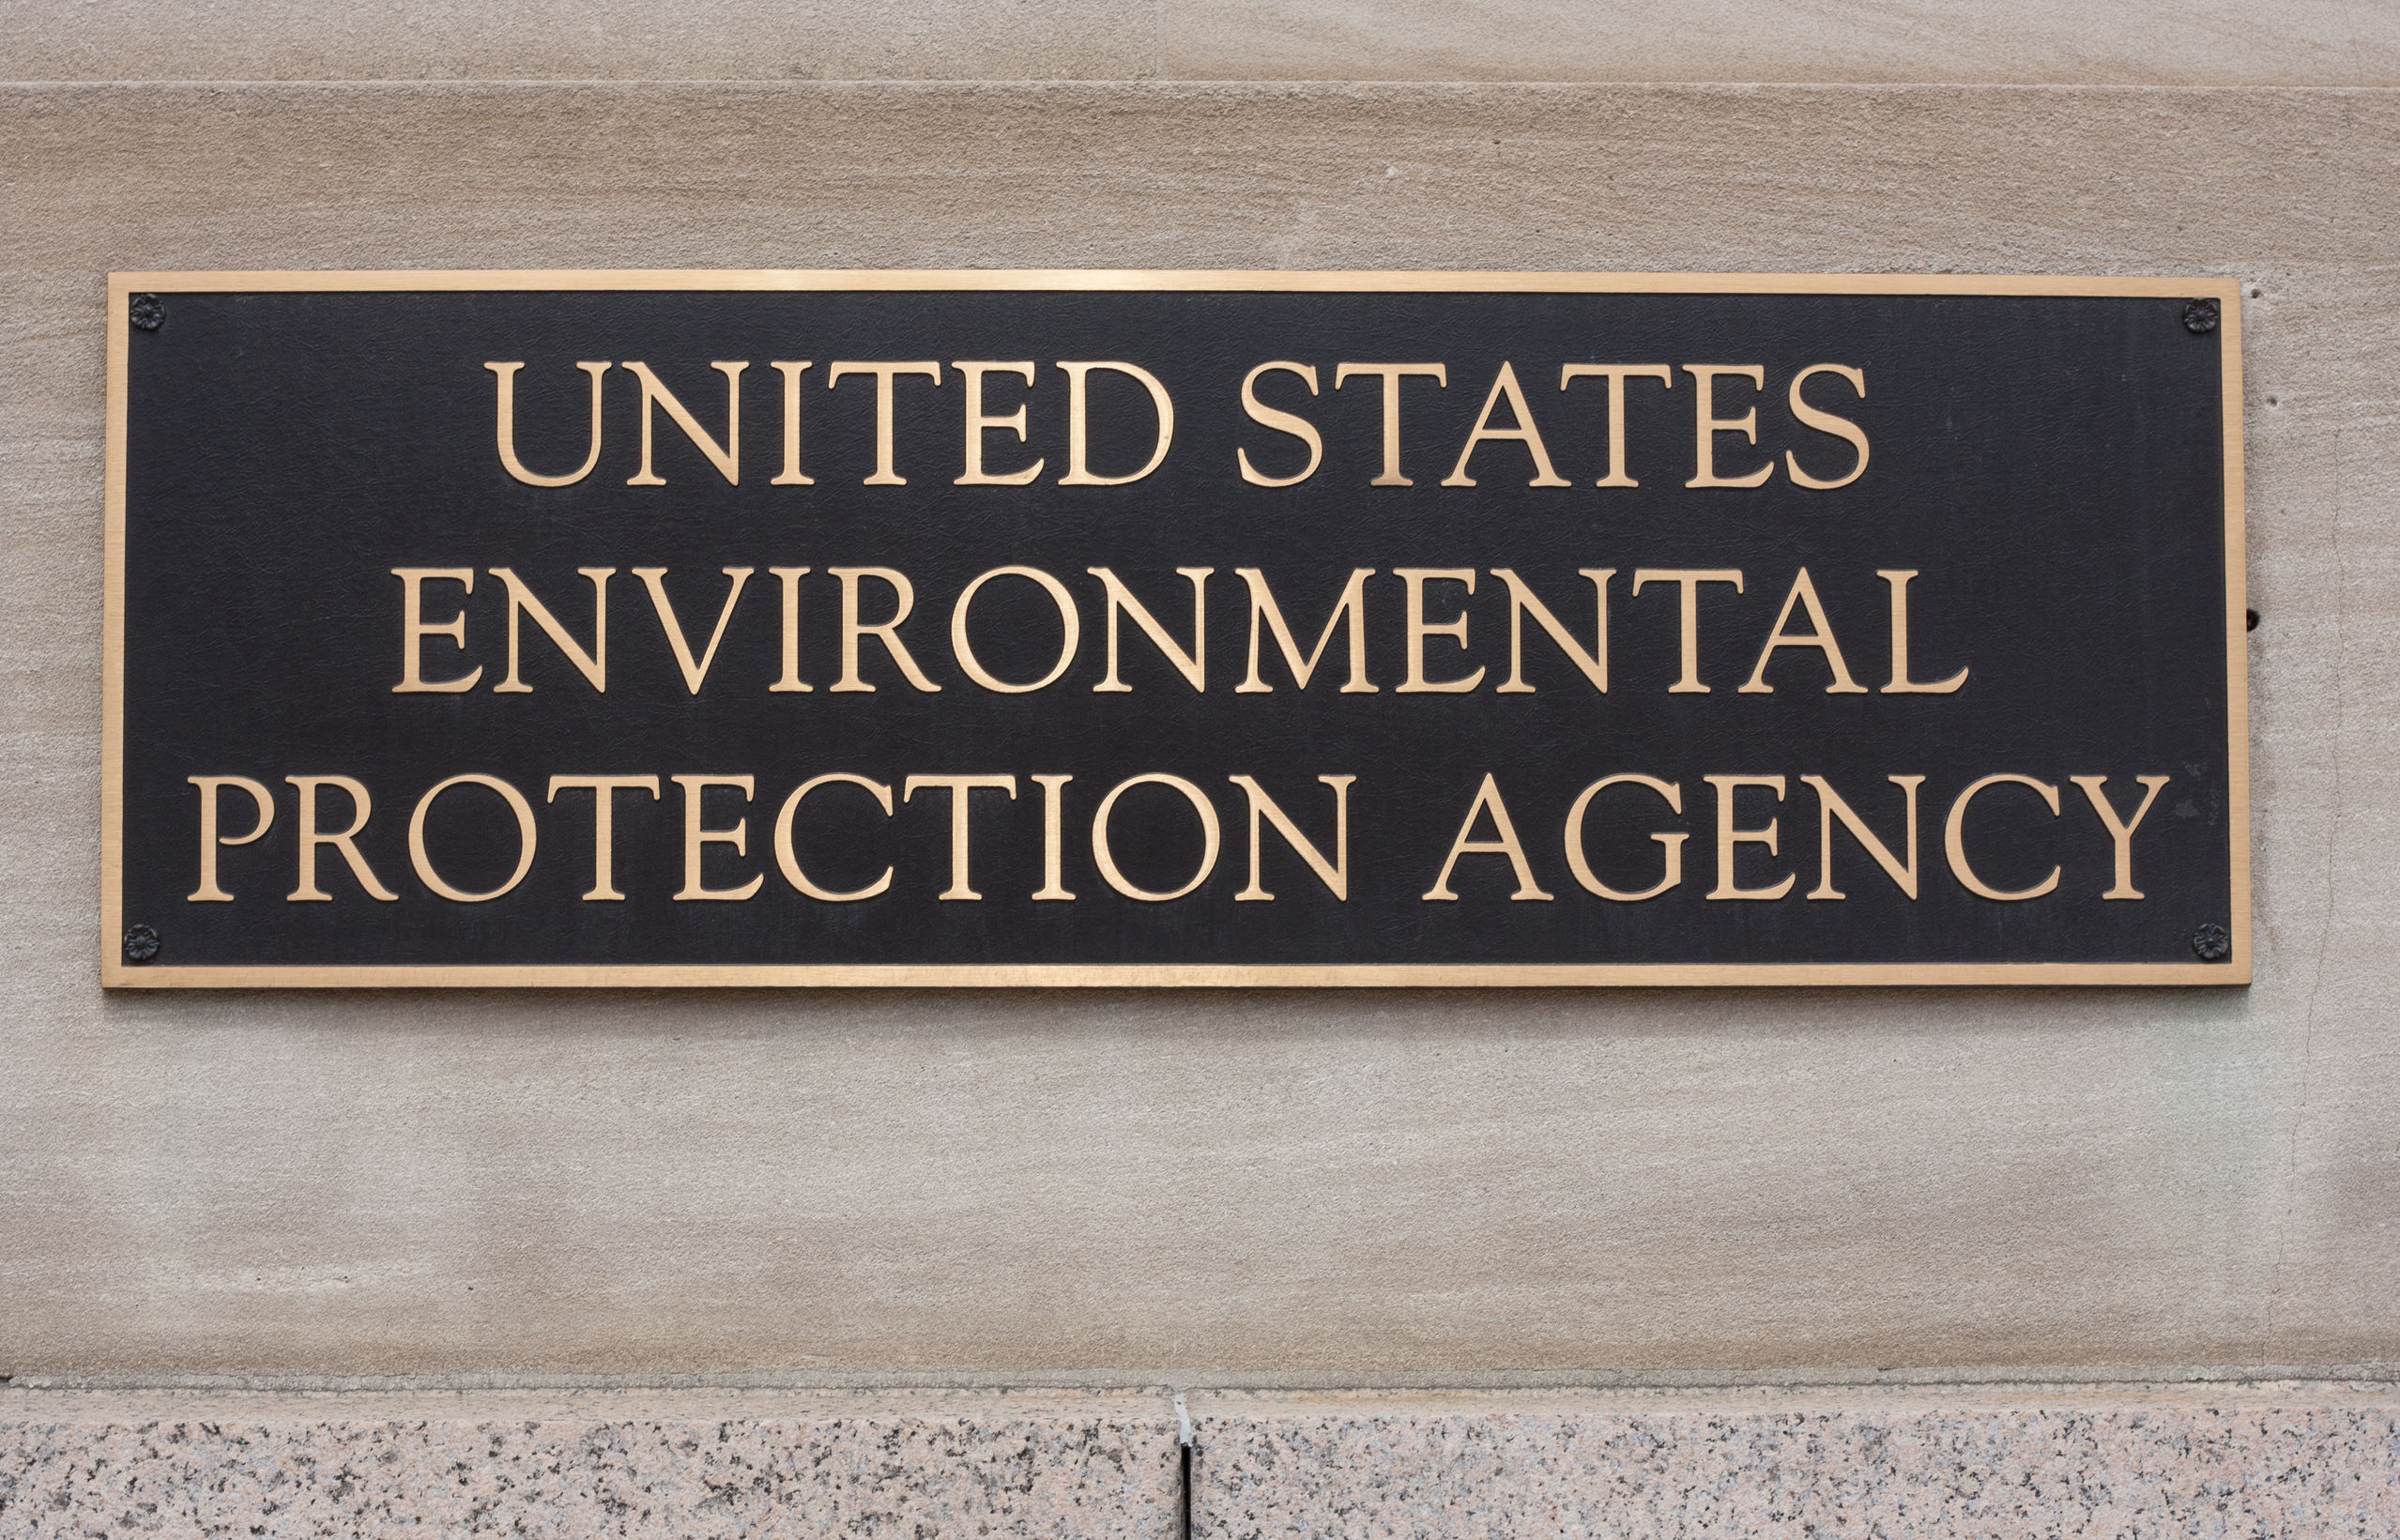 MacLellan Concrete Settles with EPA